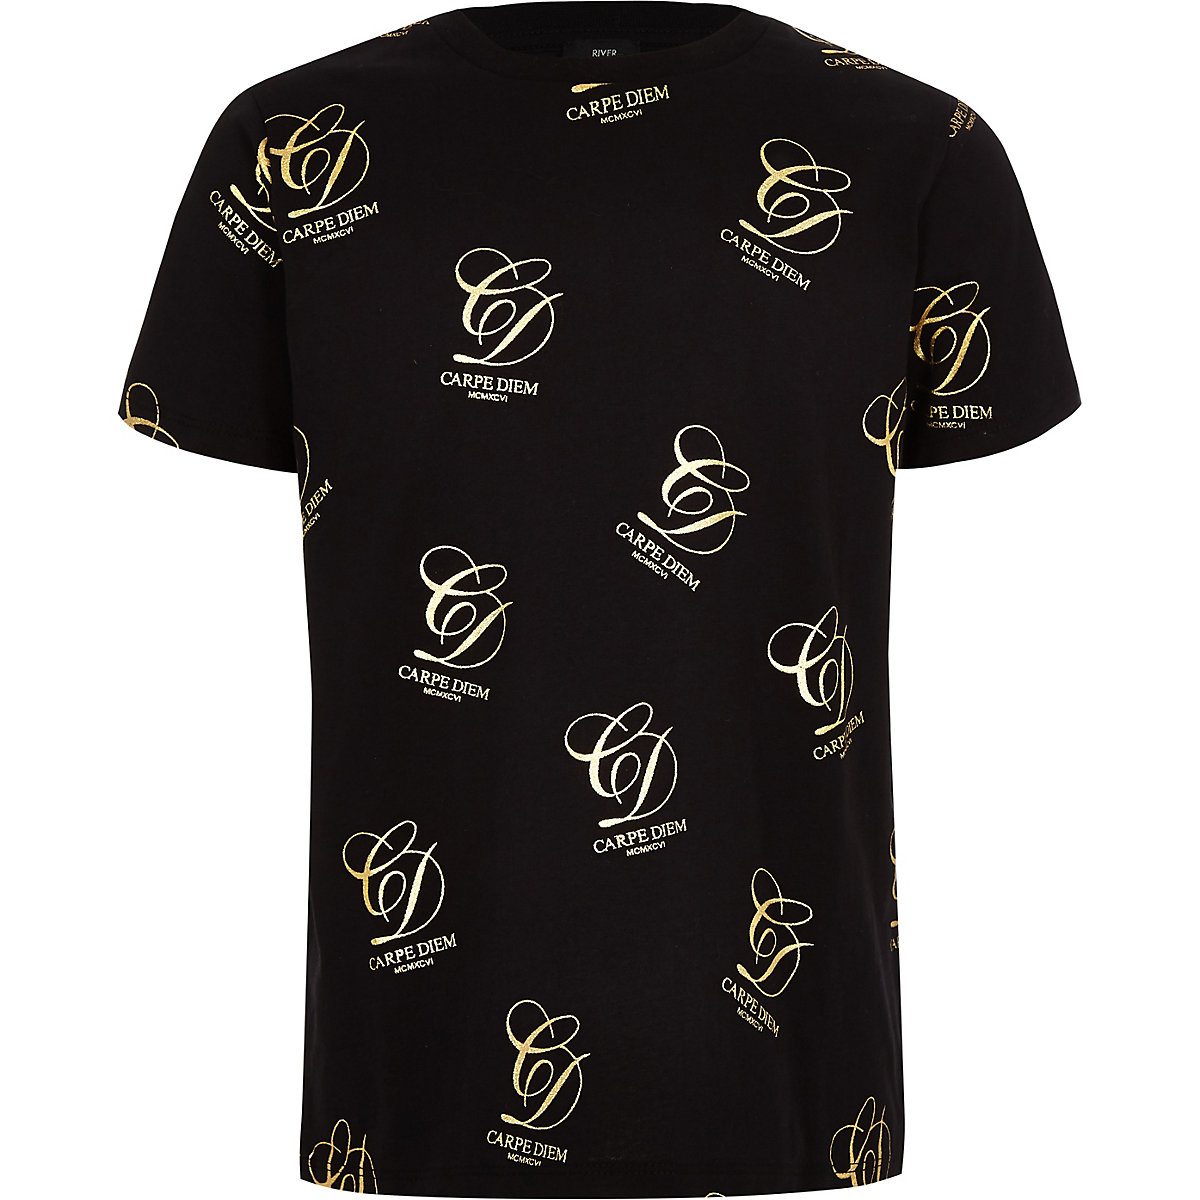 Boys black 'Carpe diem' gold foil T-shirt